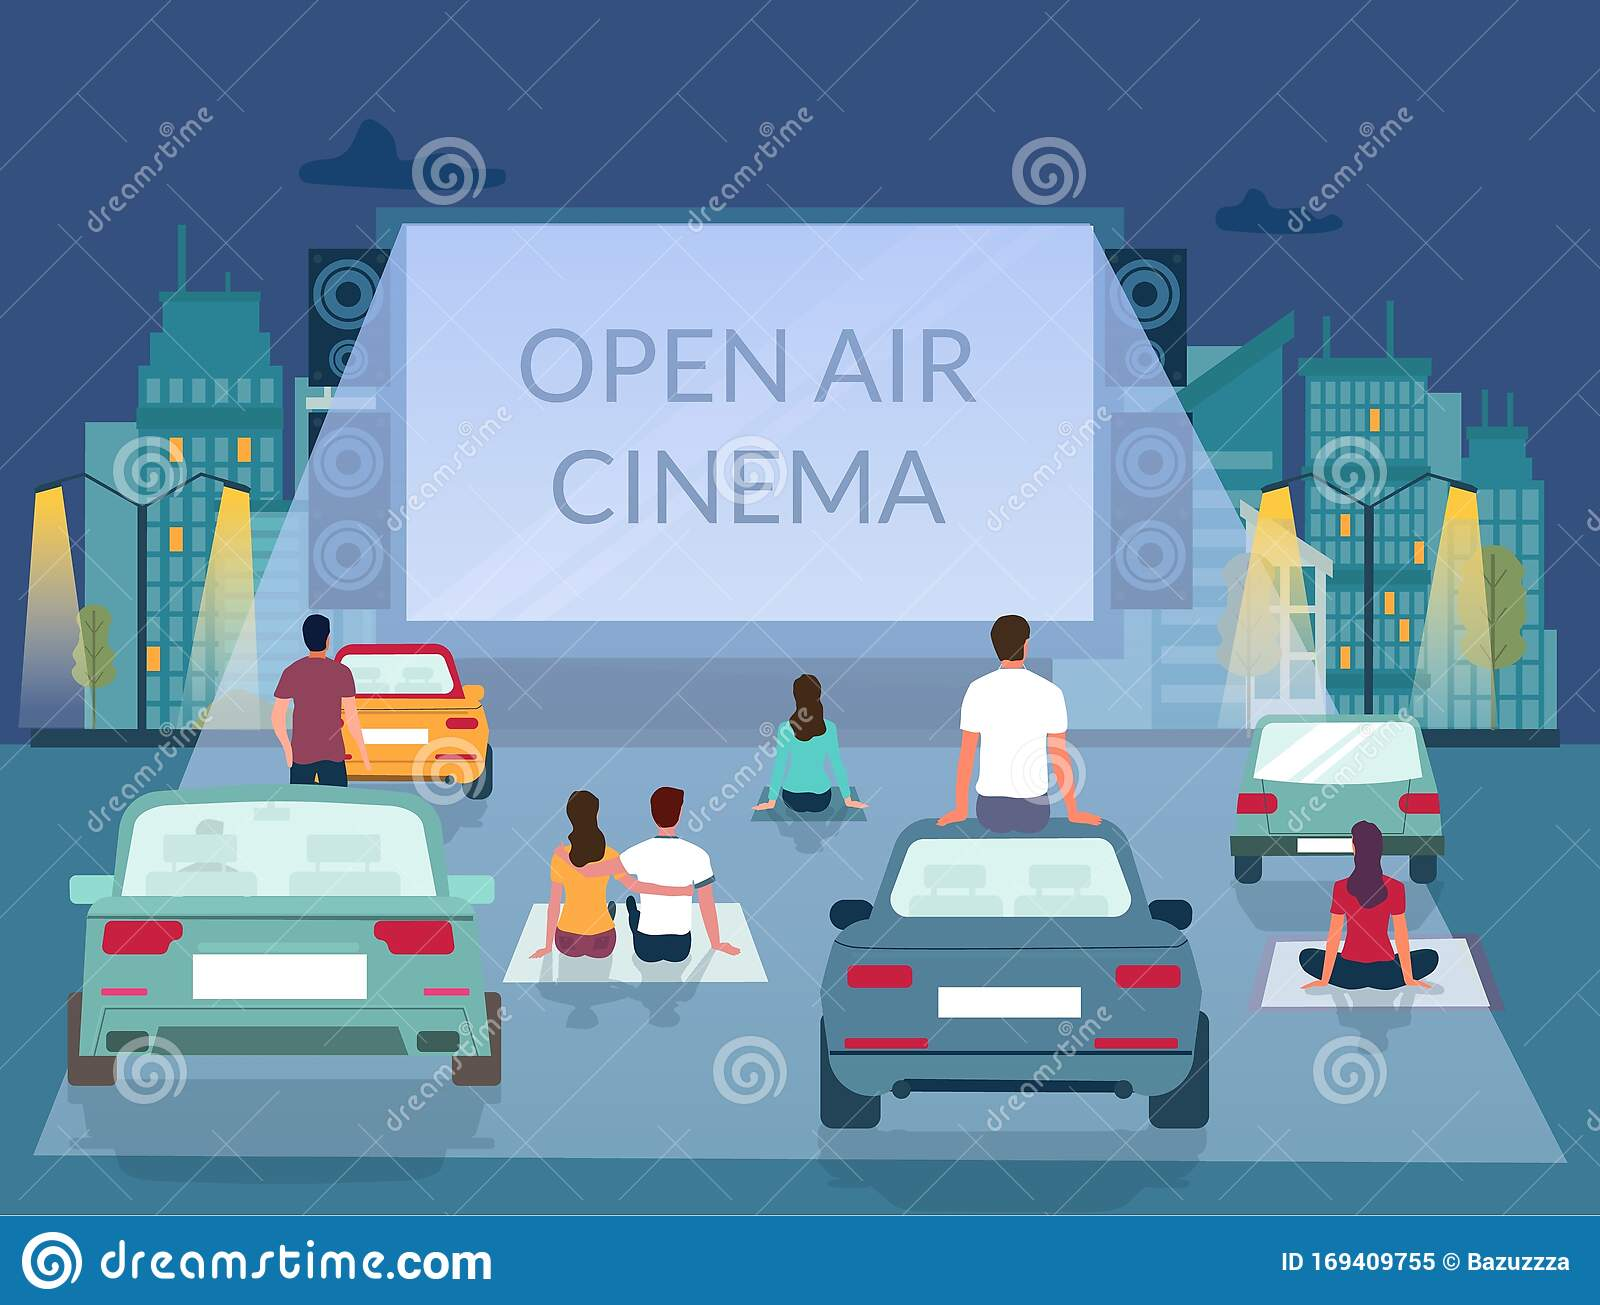 Open Air Cinema Vector Poster Design Template Stock Vector Illustration Of Auto Film 169409755